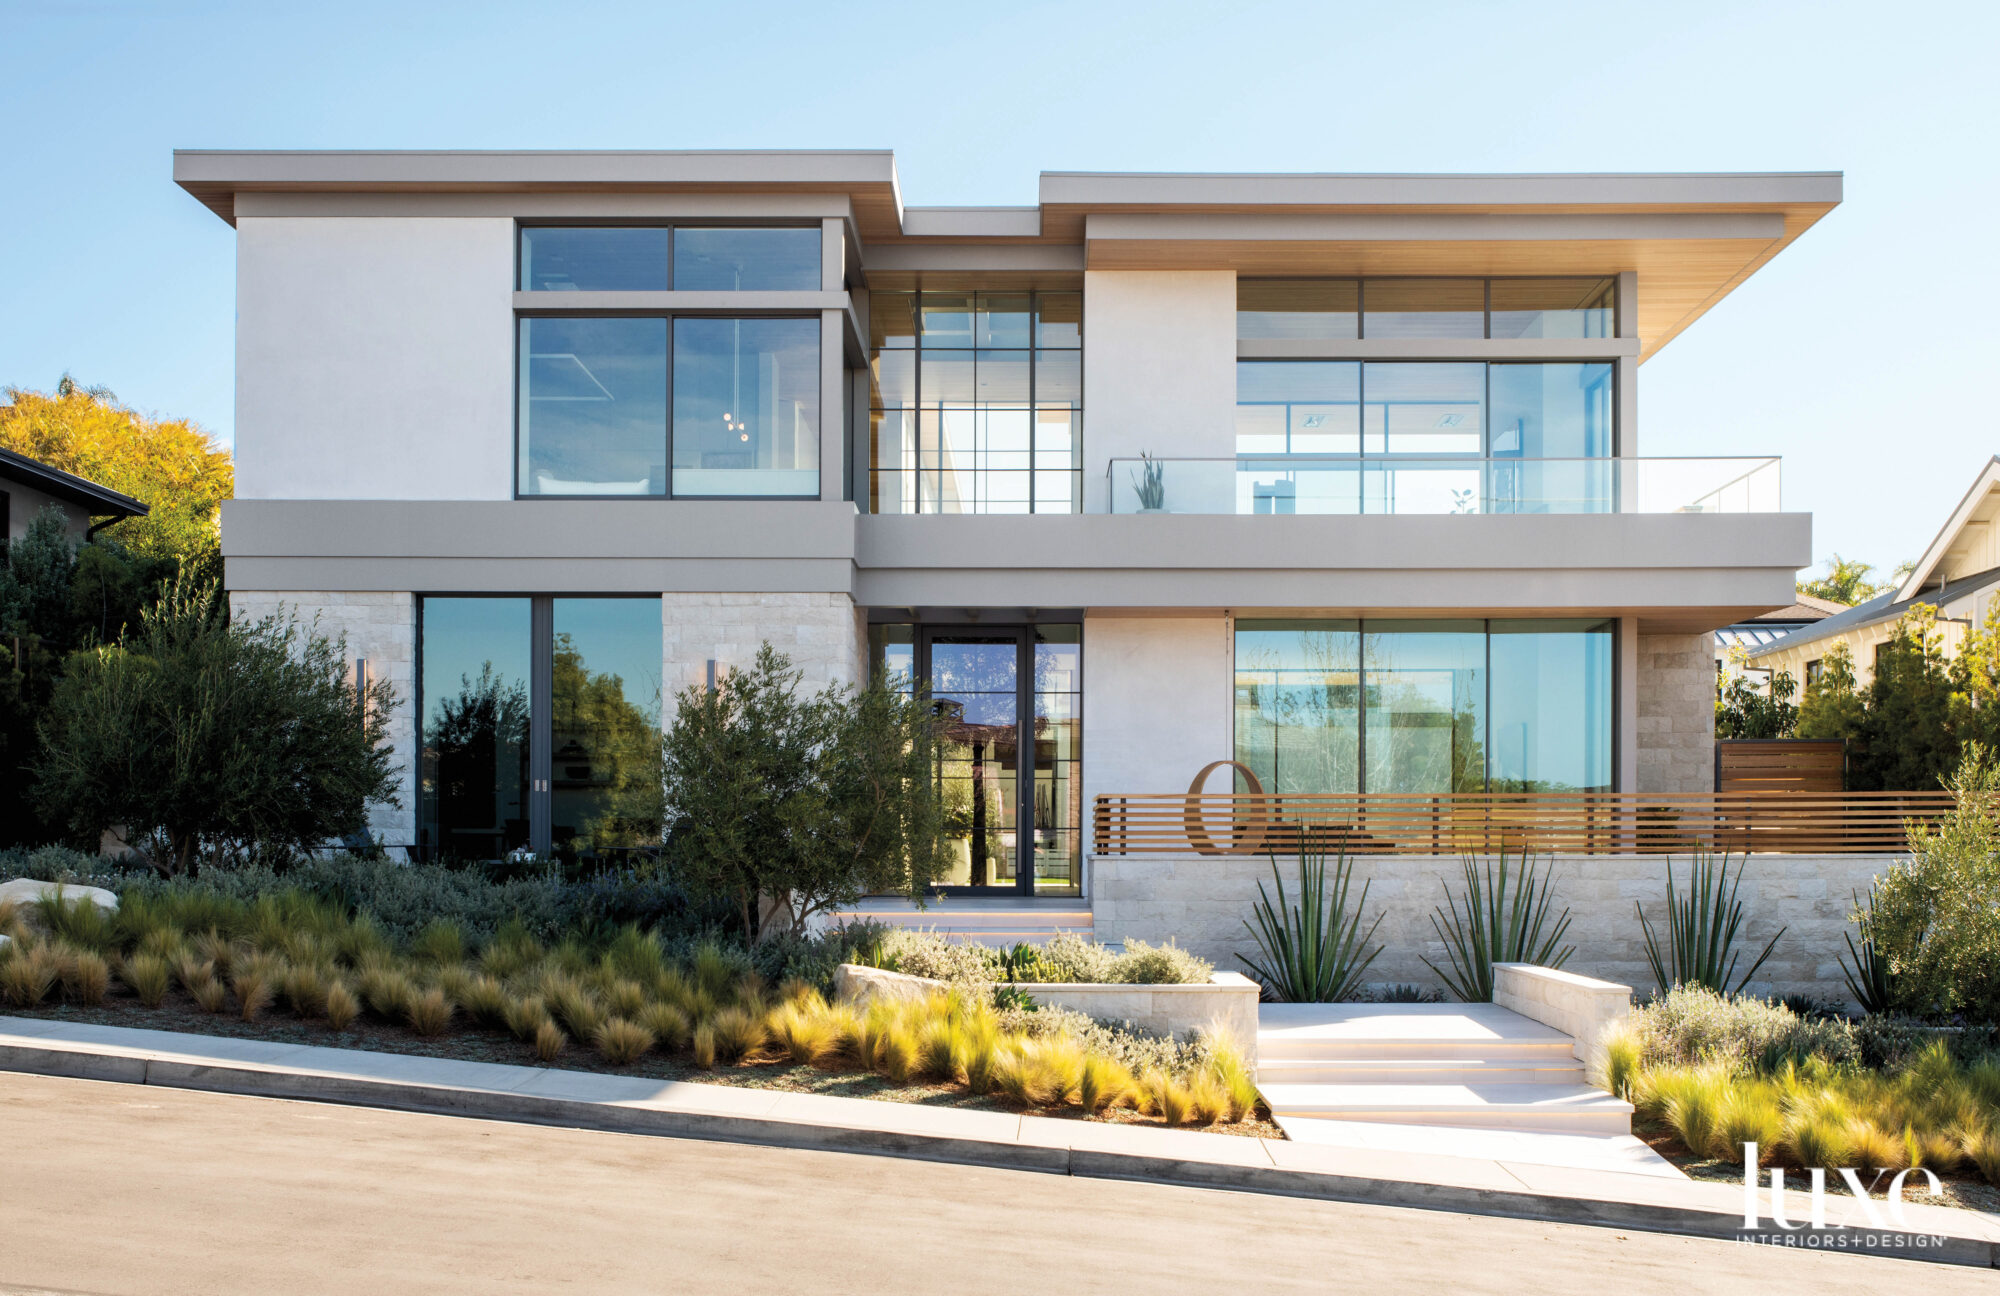 Exterior of Manhattan Beach house with two stories